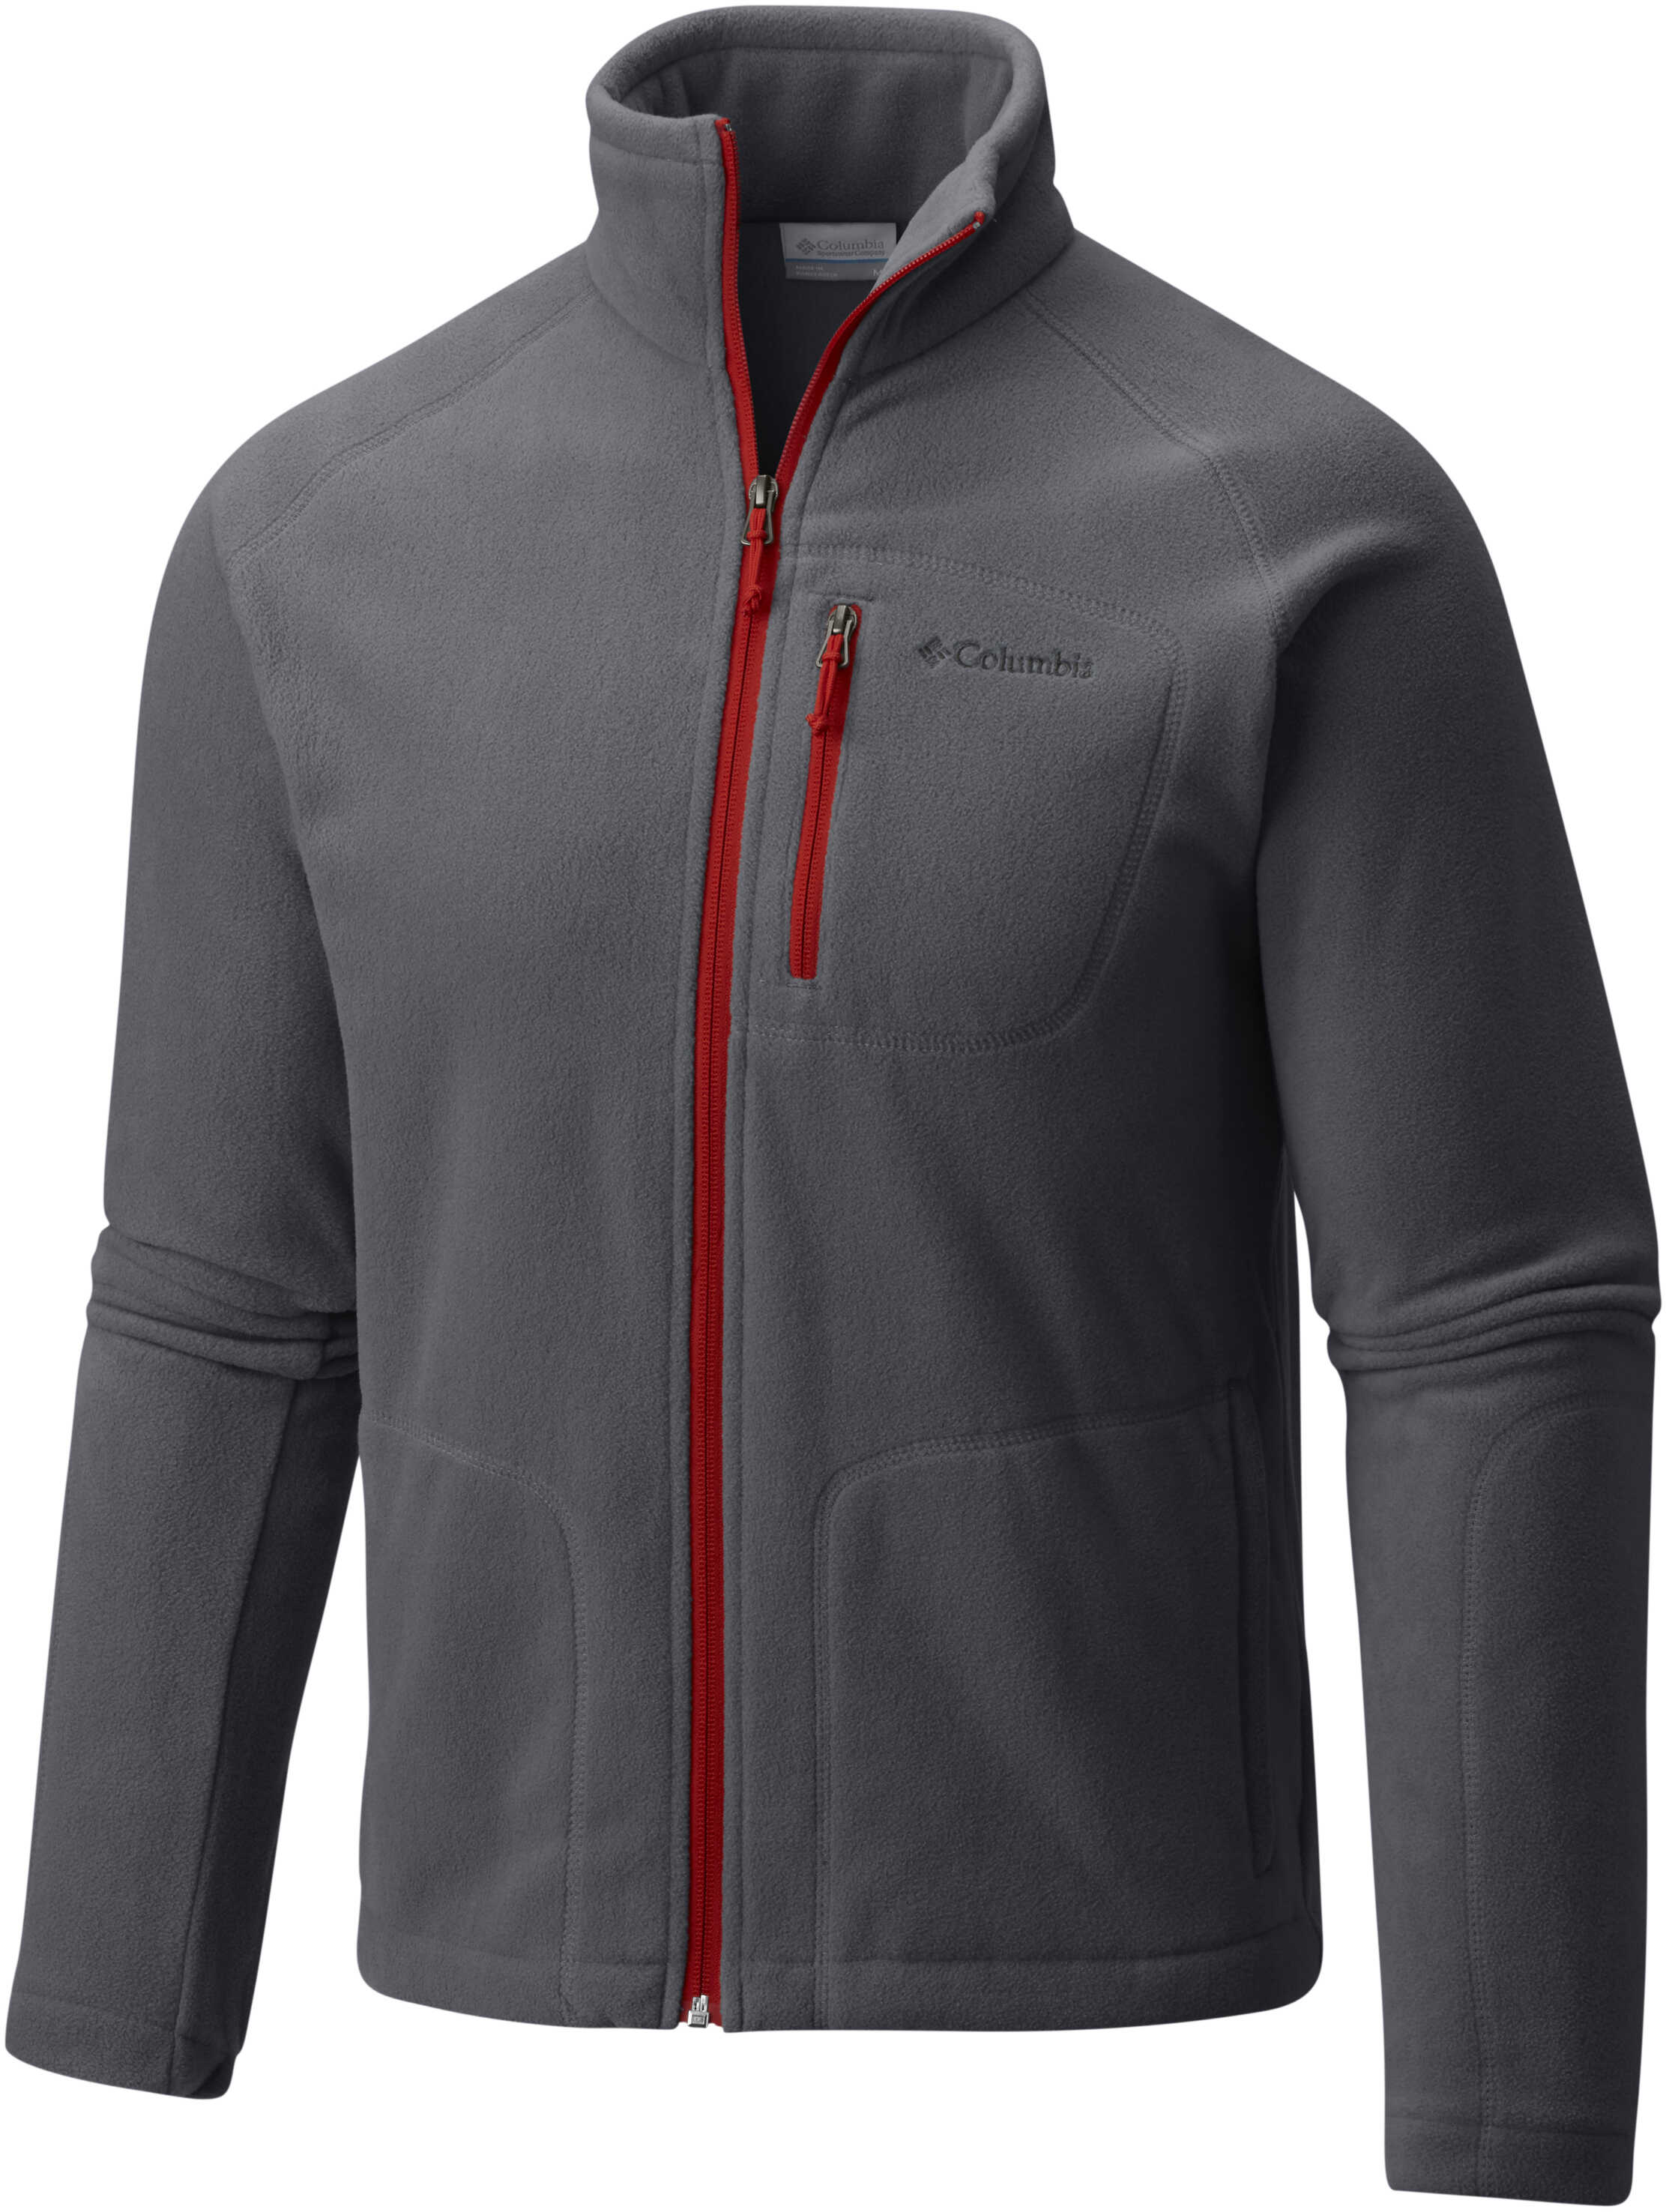 Columbia FAST TREK II FULL ZIP-Zinc/Voltage Graphite/Mountain Red